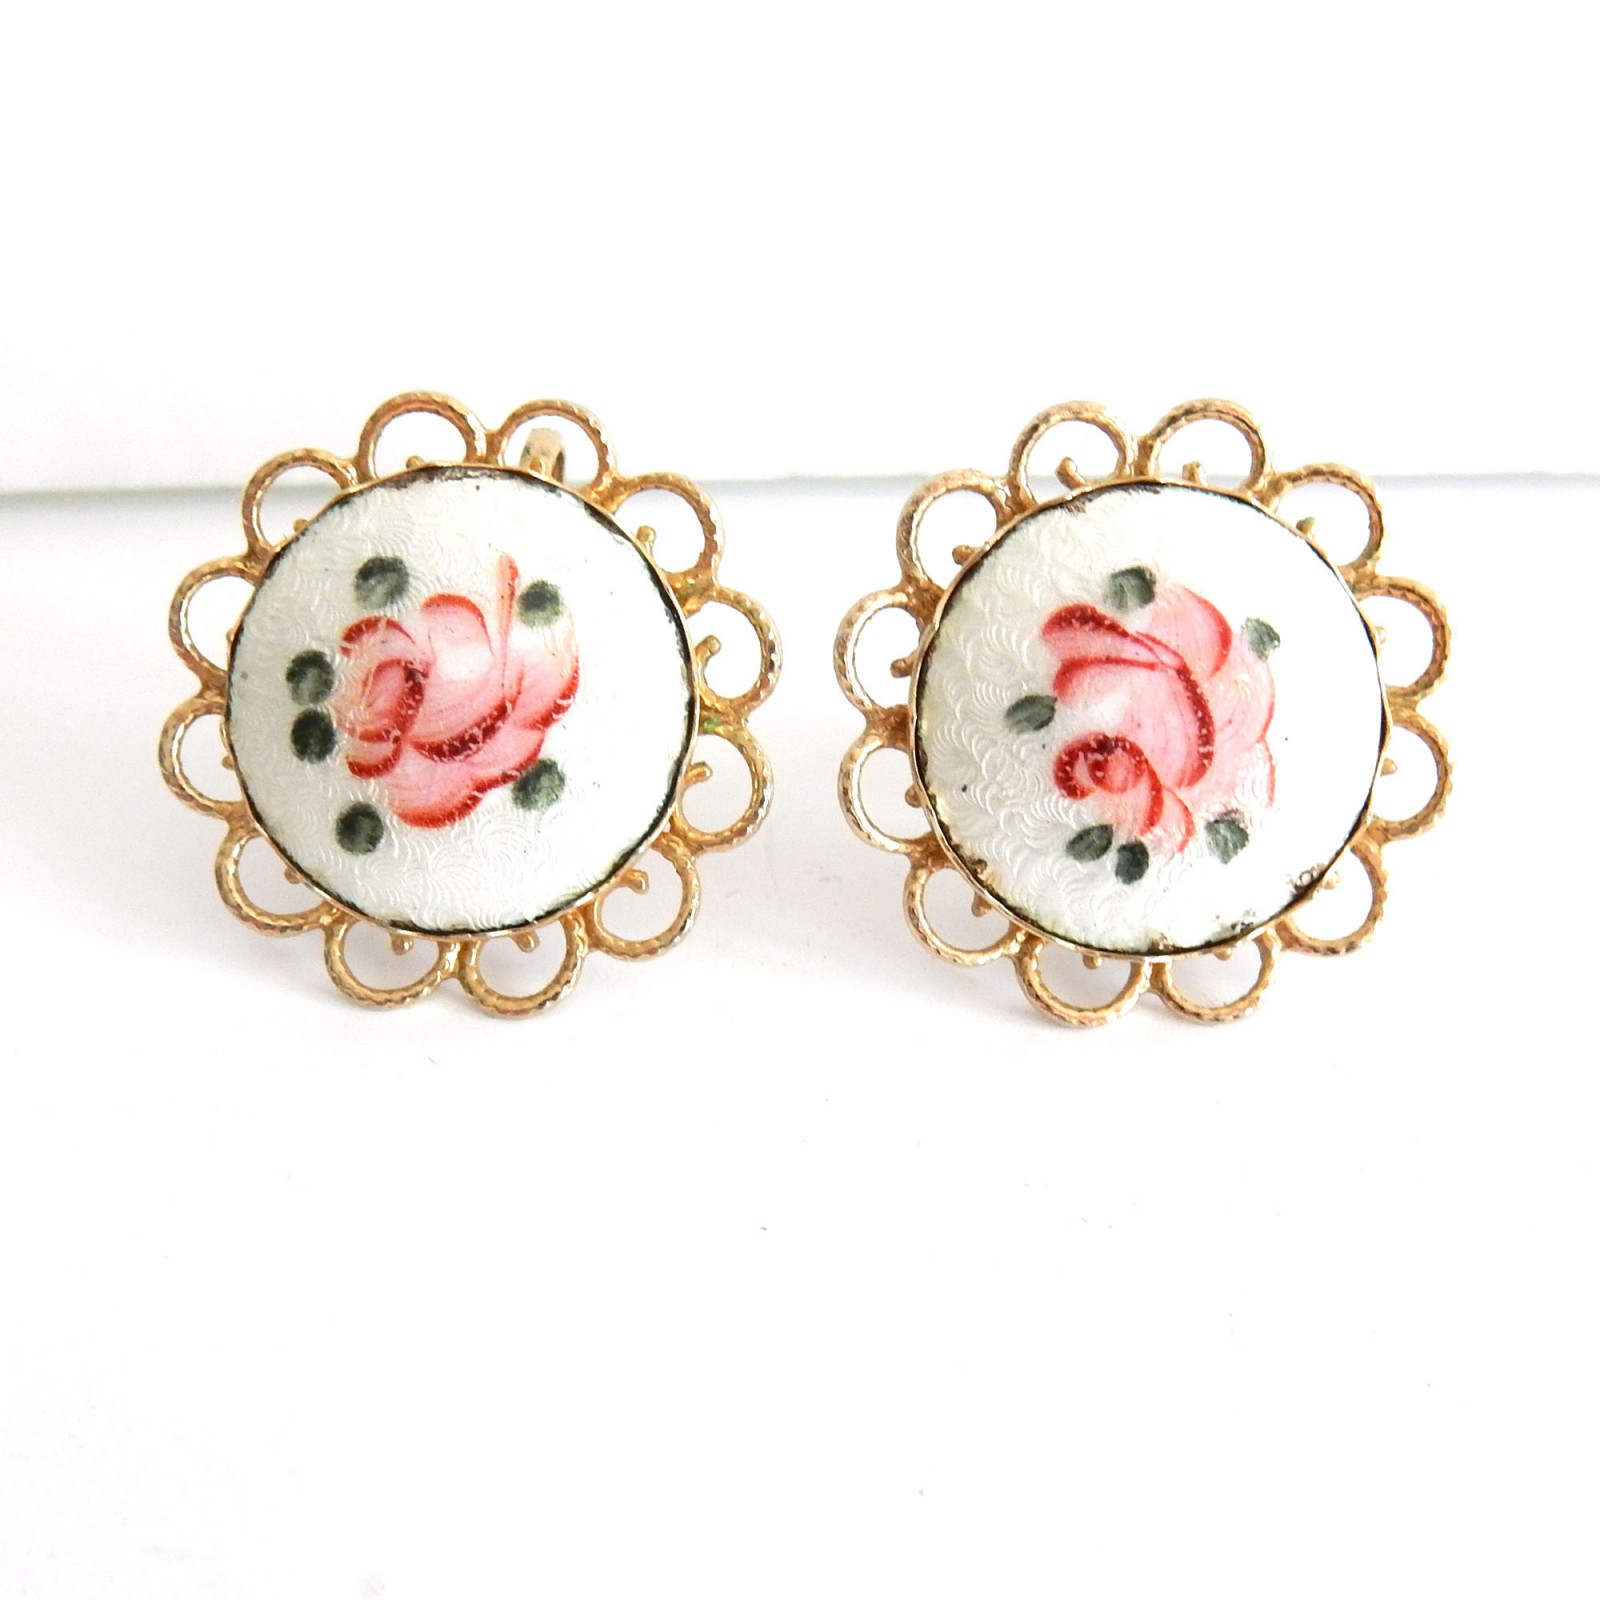 Photo of Vintage Hand Painted Enamel Coro Clip on Earrings Signed